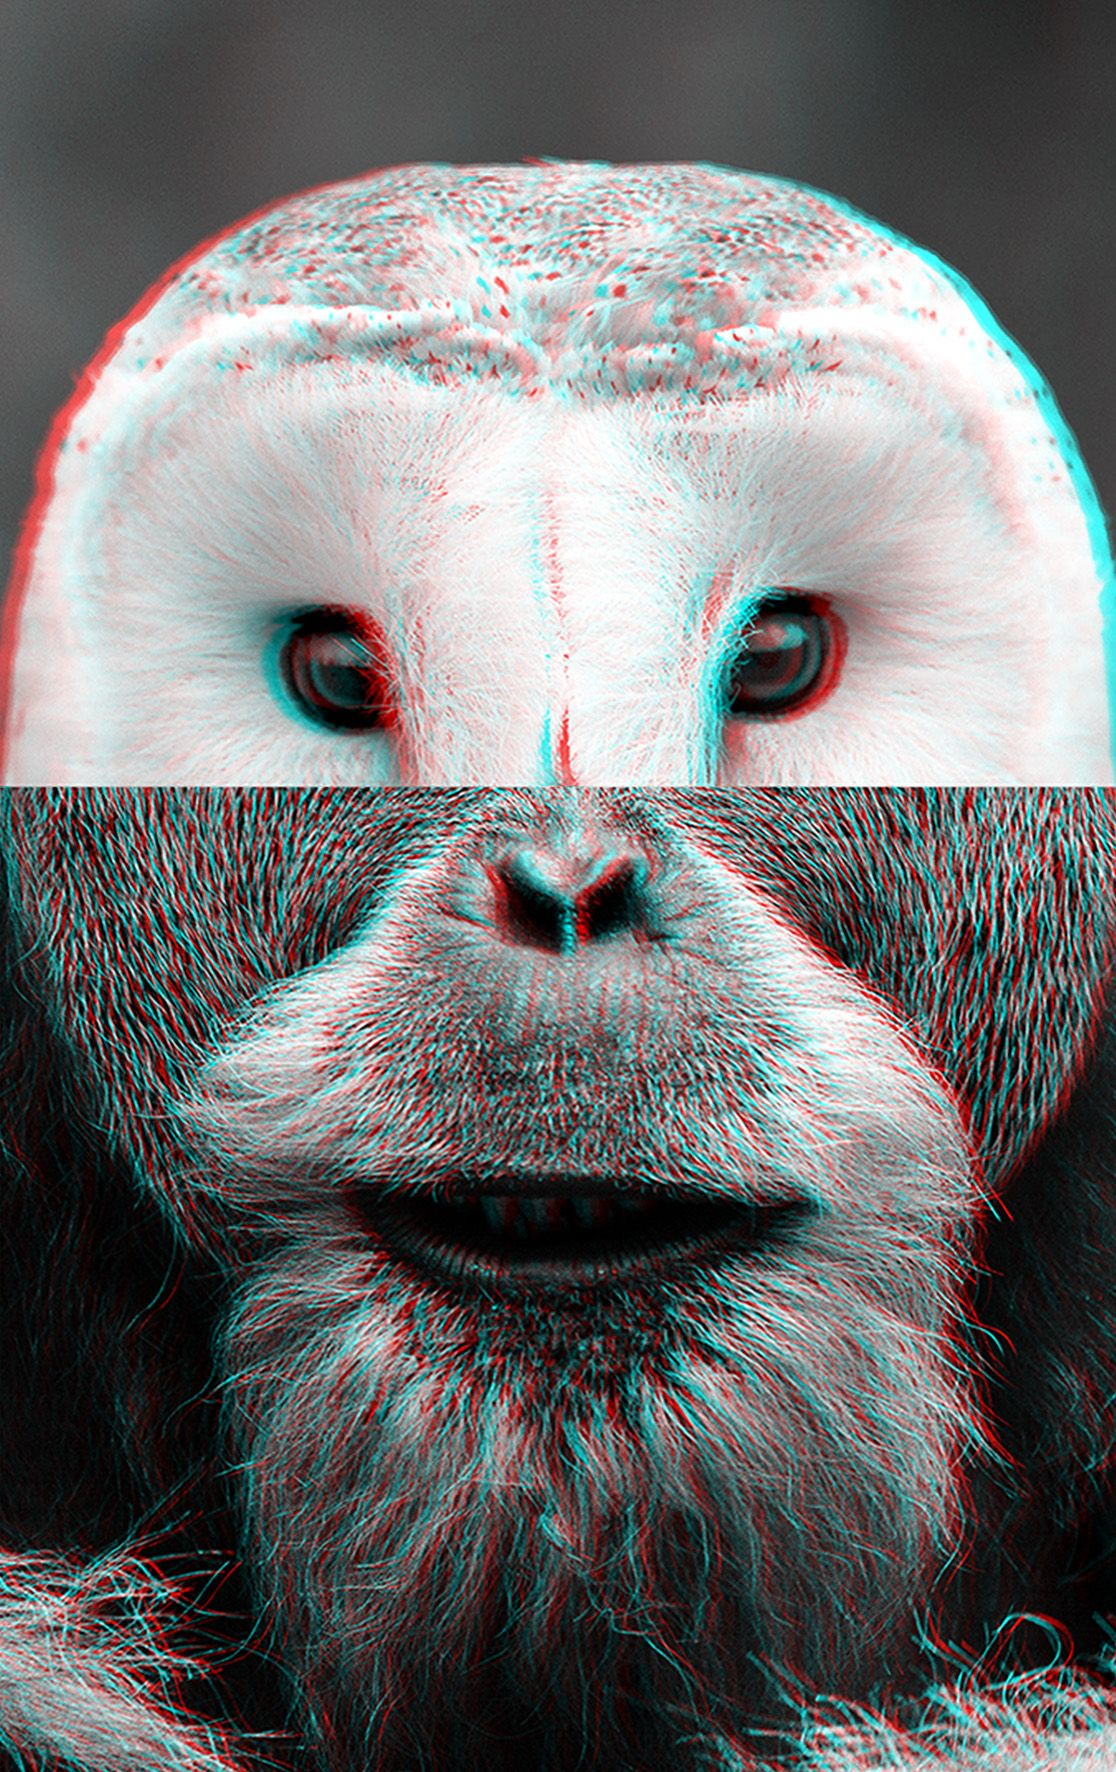 Photomontage: Ulf Rehnholm #everythingisconnected #ulfrehnholm #rehnholm #photoart #blackandwhite #photography #stereo #anaglyph  #anaglyph3d #owl #gorilla